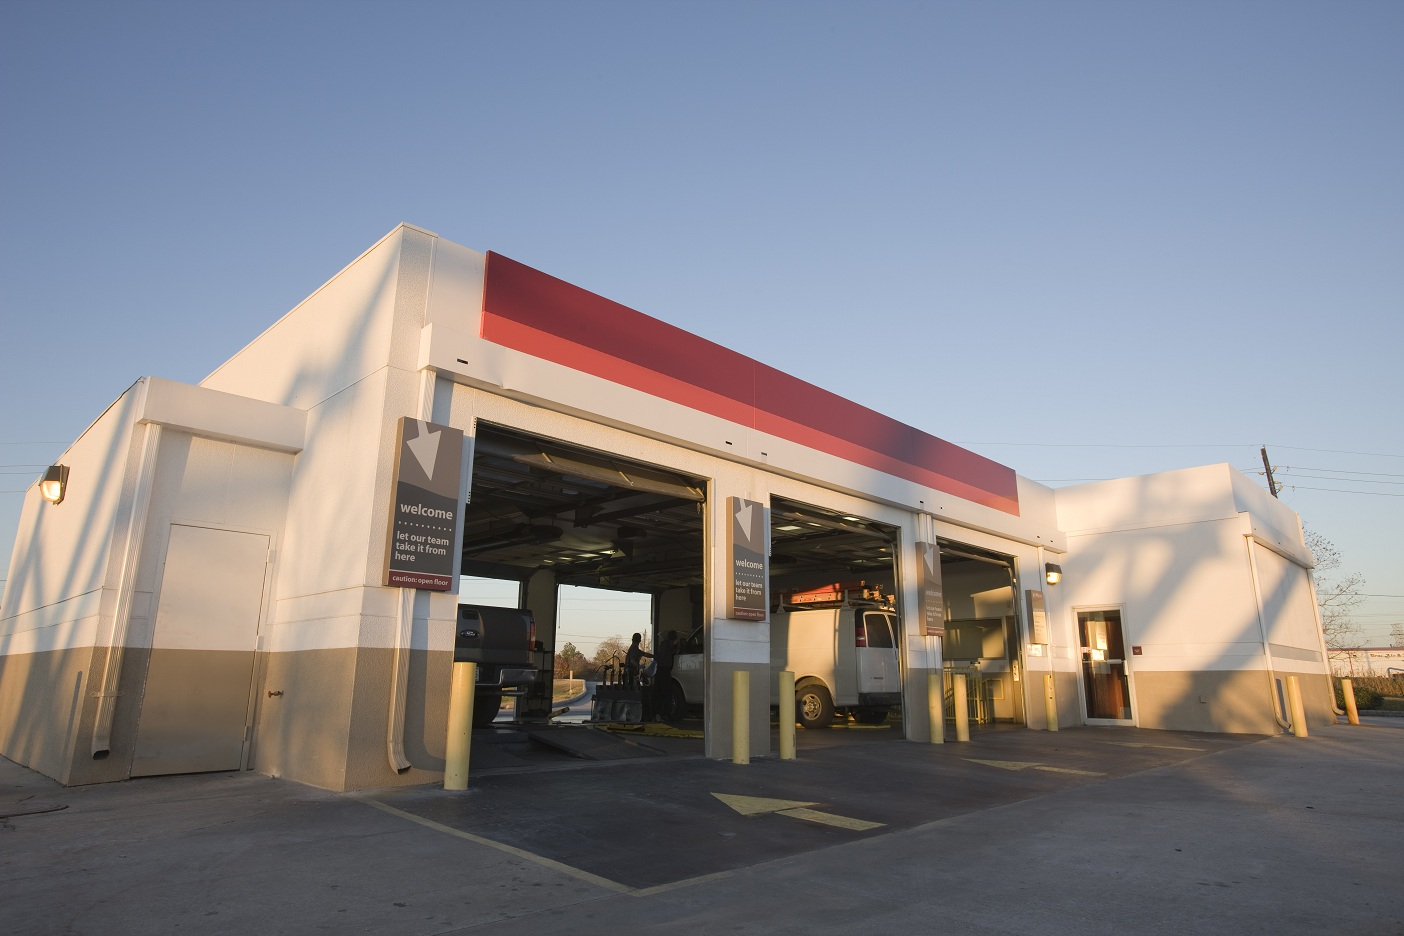 Jiffy Lube in TWENTYNINE PALMS, CA